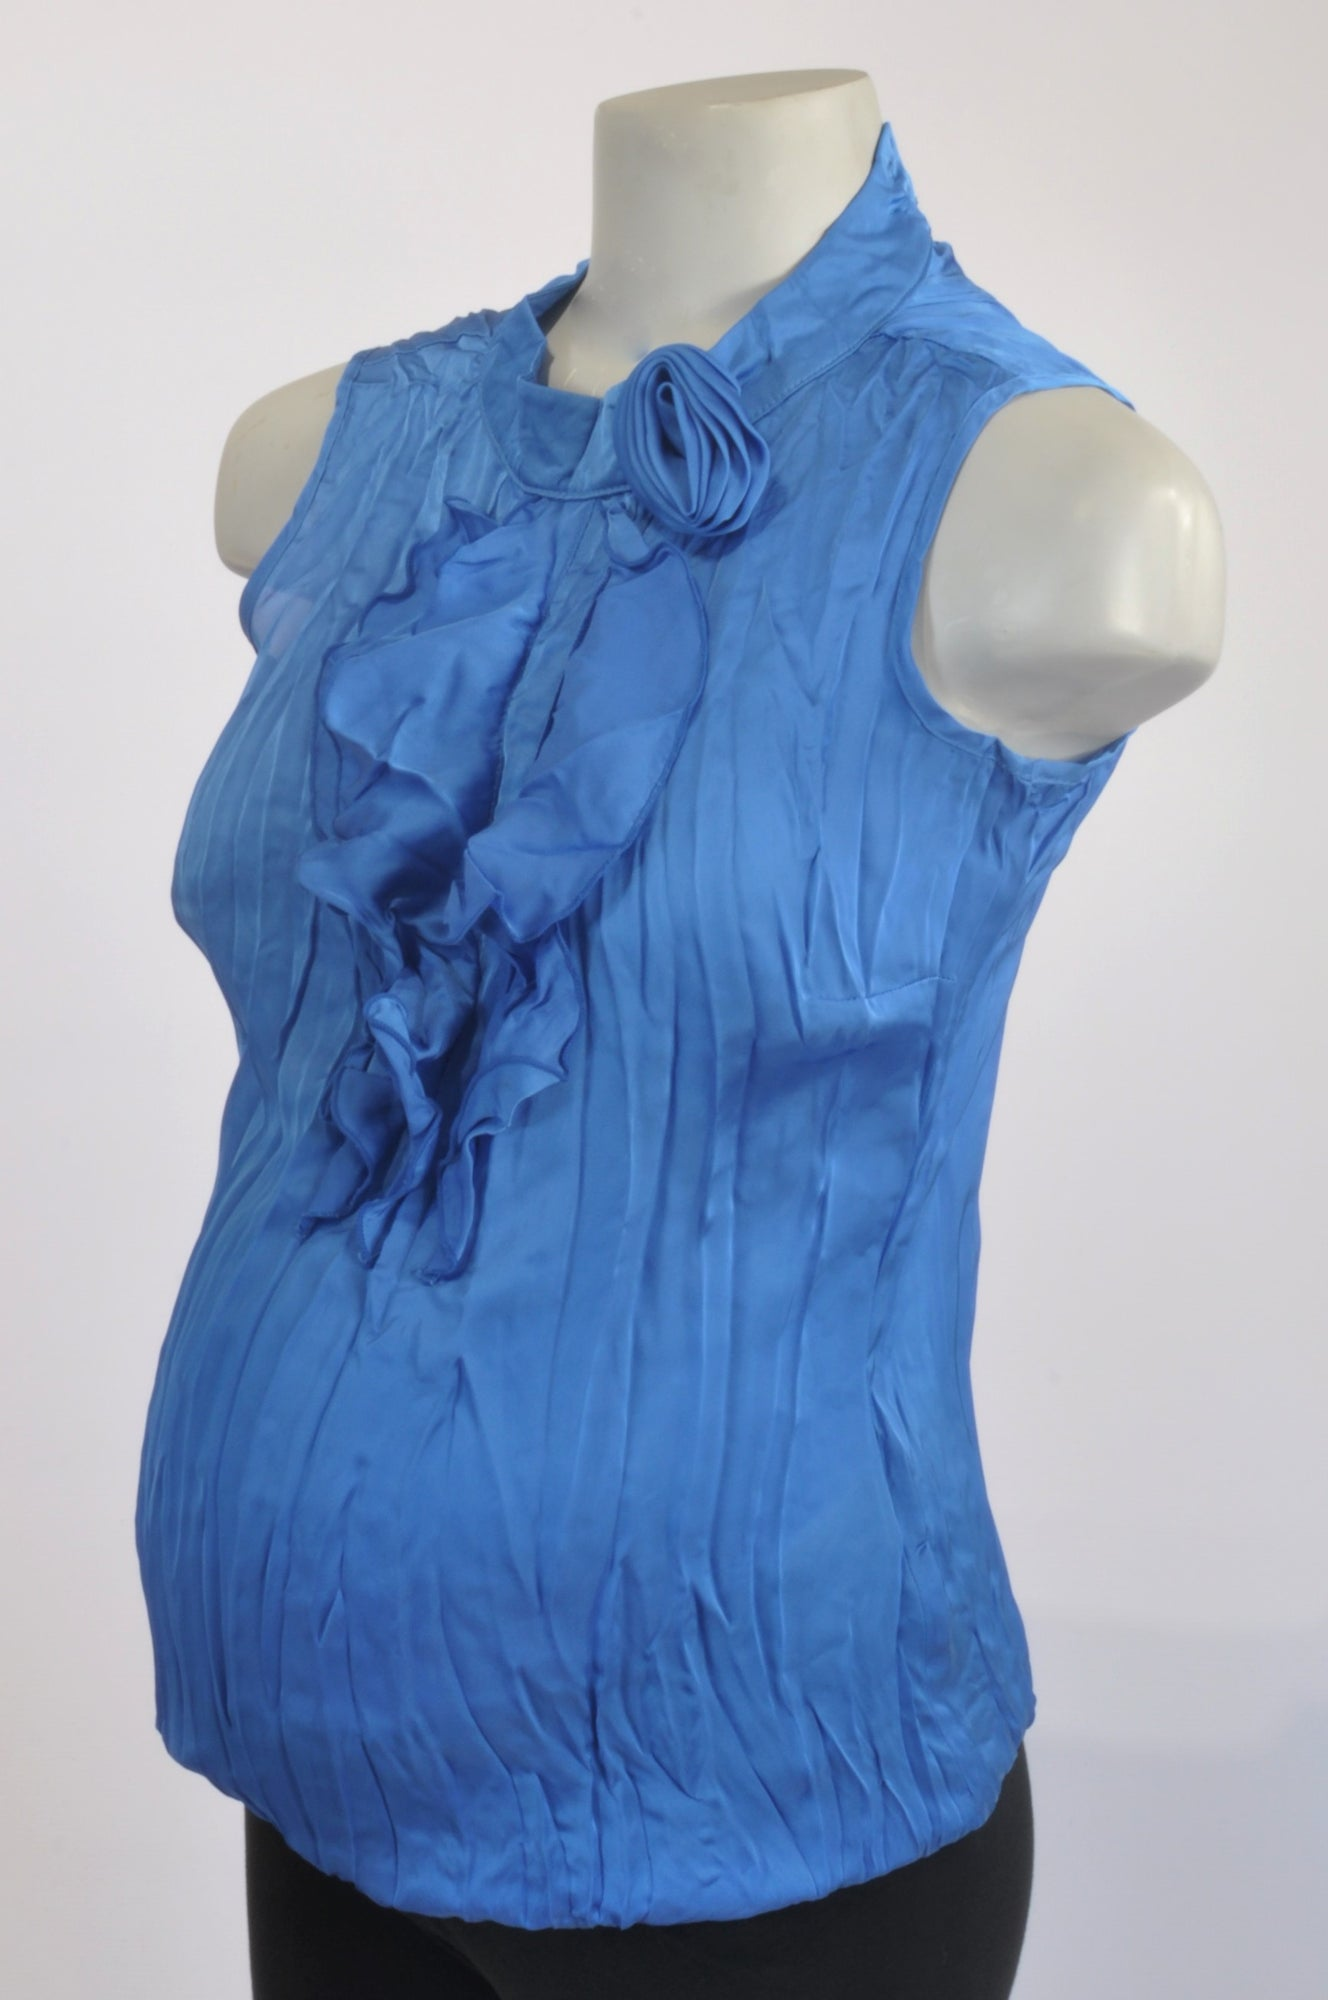 Contempo Blue Ruffle Satin Rose Maternity Blouse Size 10